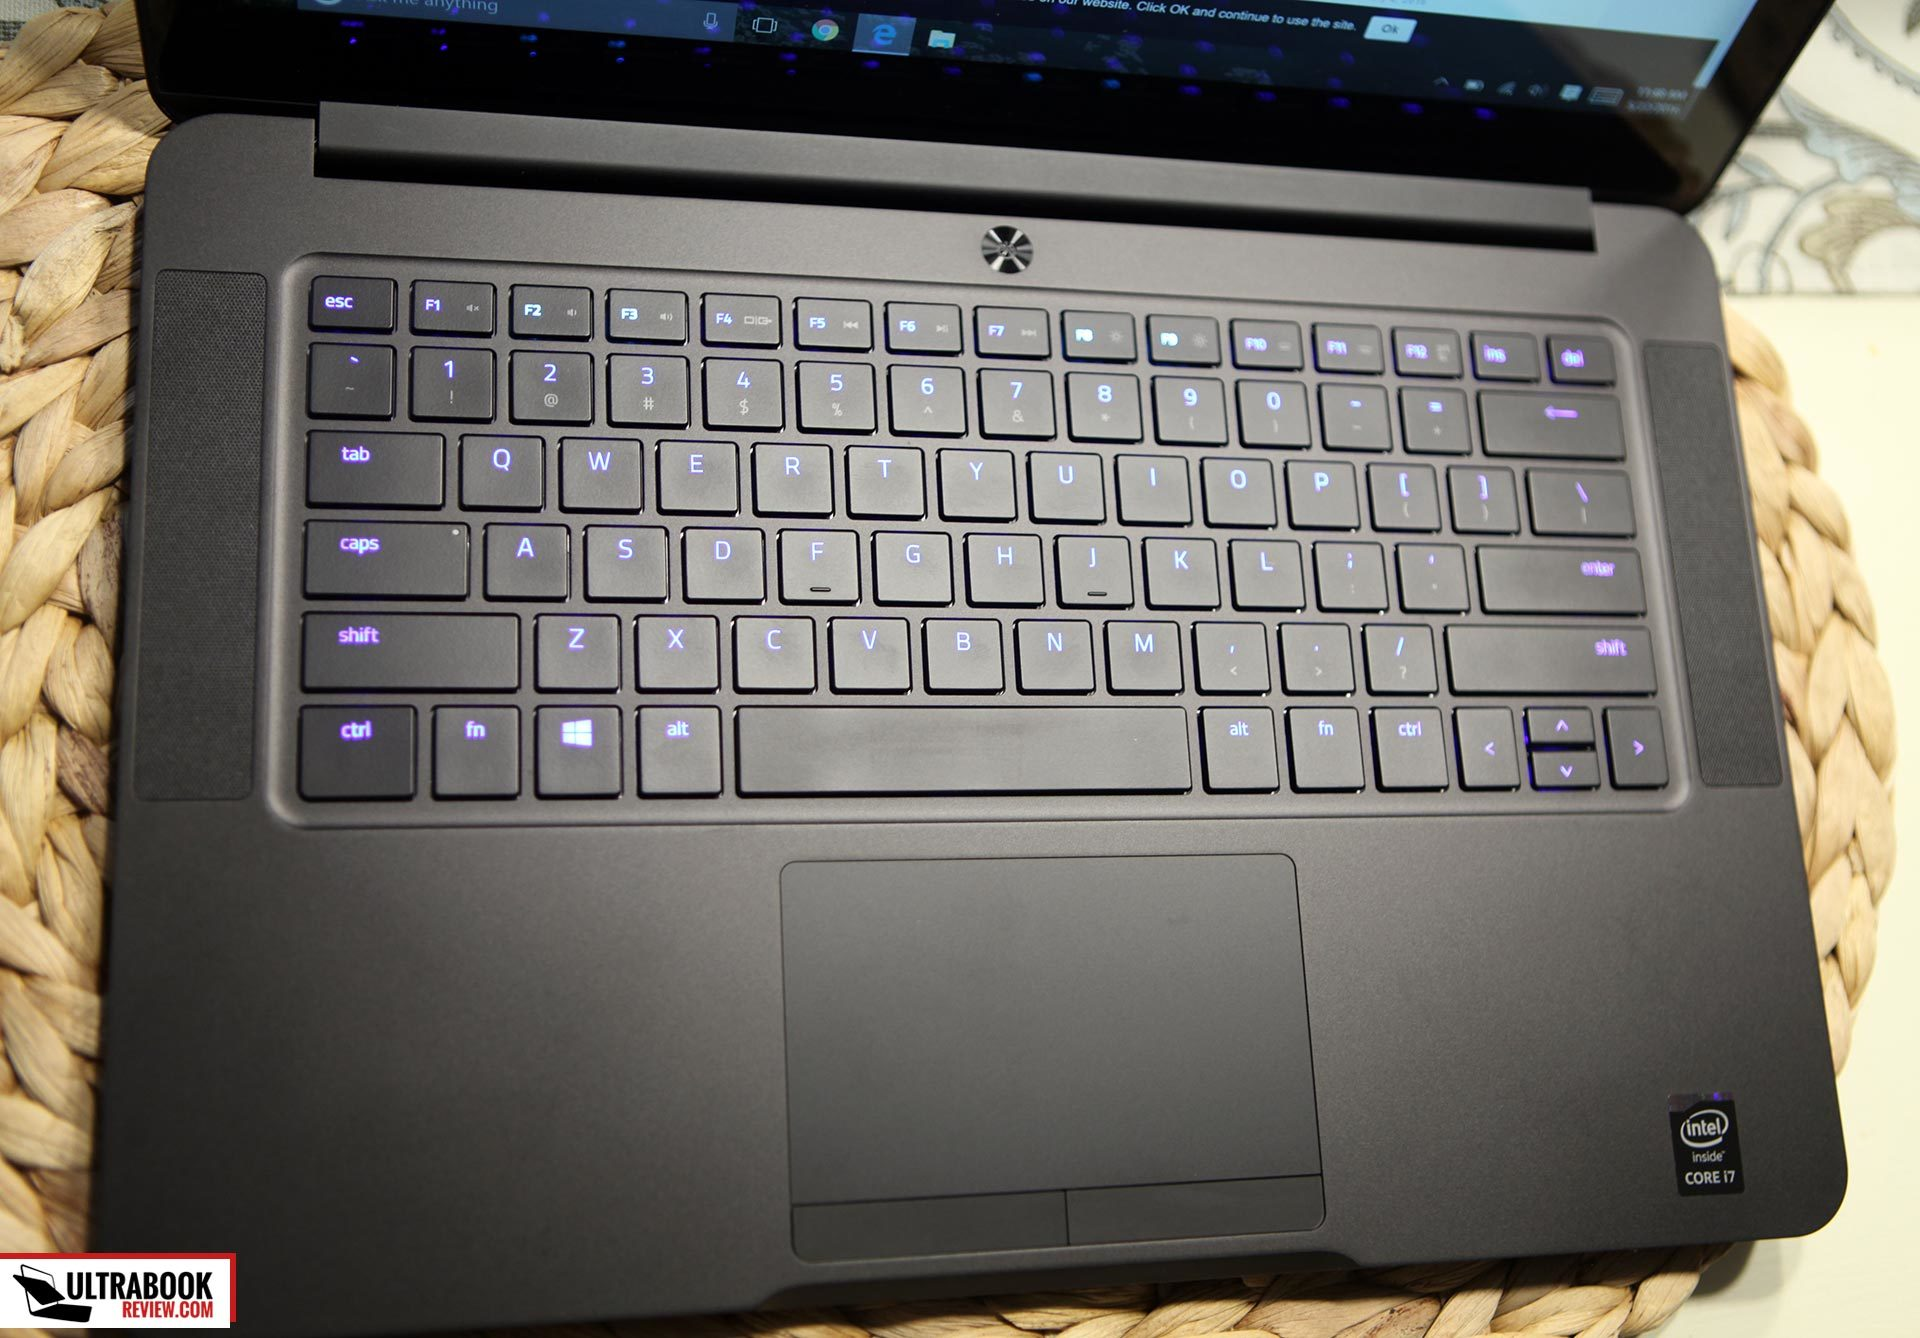 Razer Blade (14-inch) review - solid 14-inch ultraportable